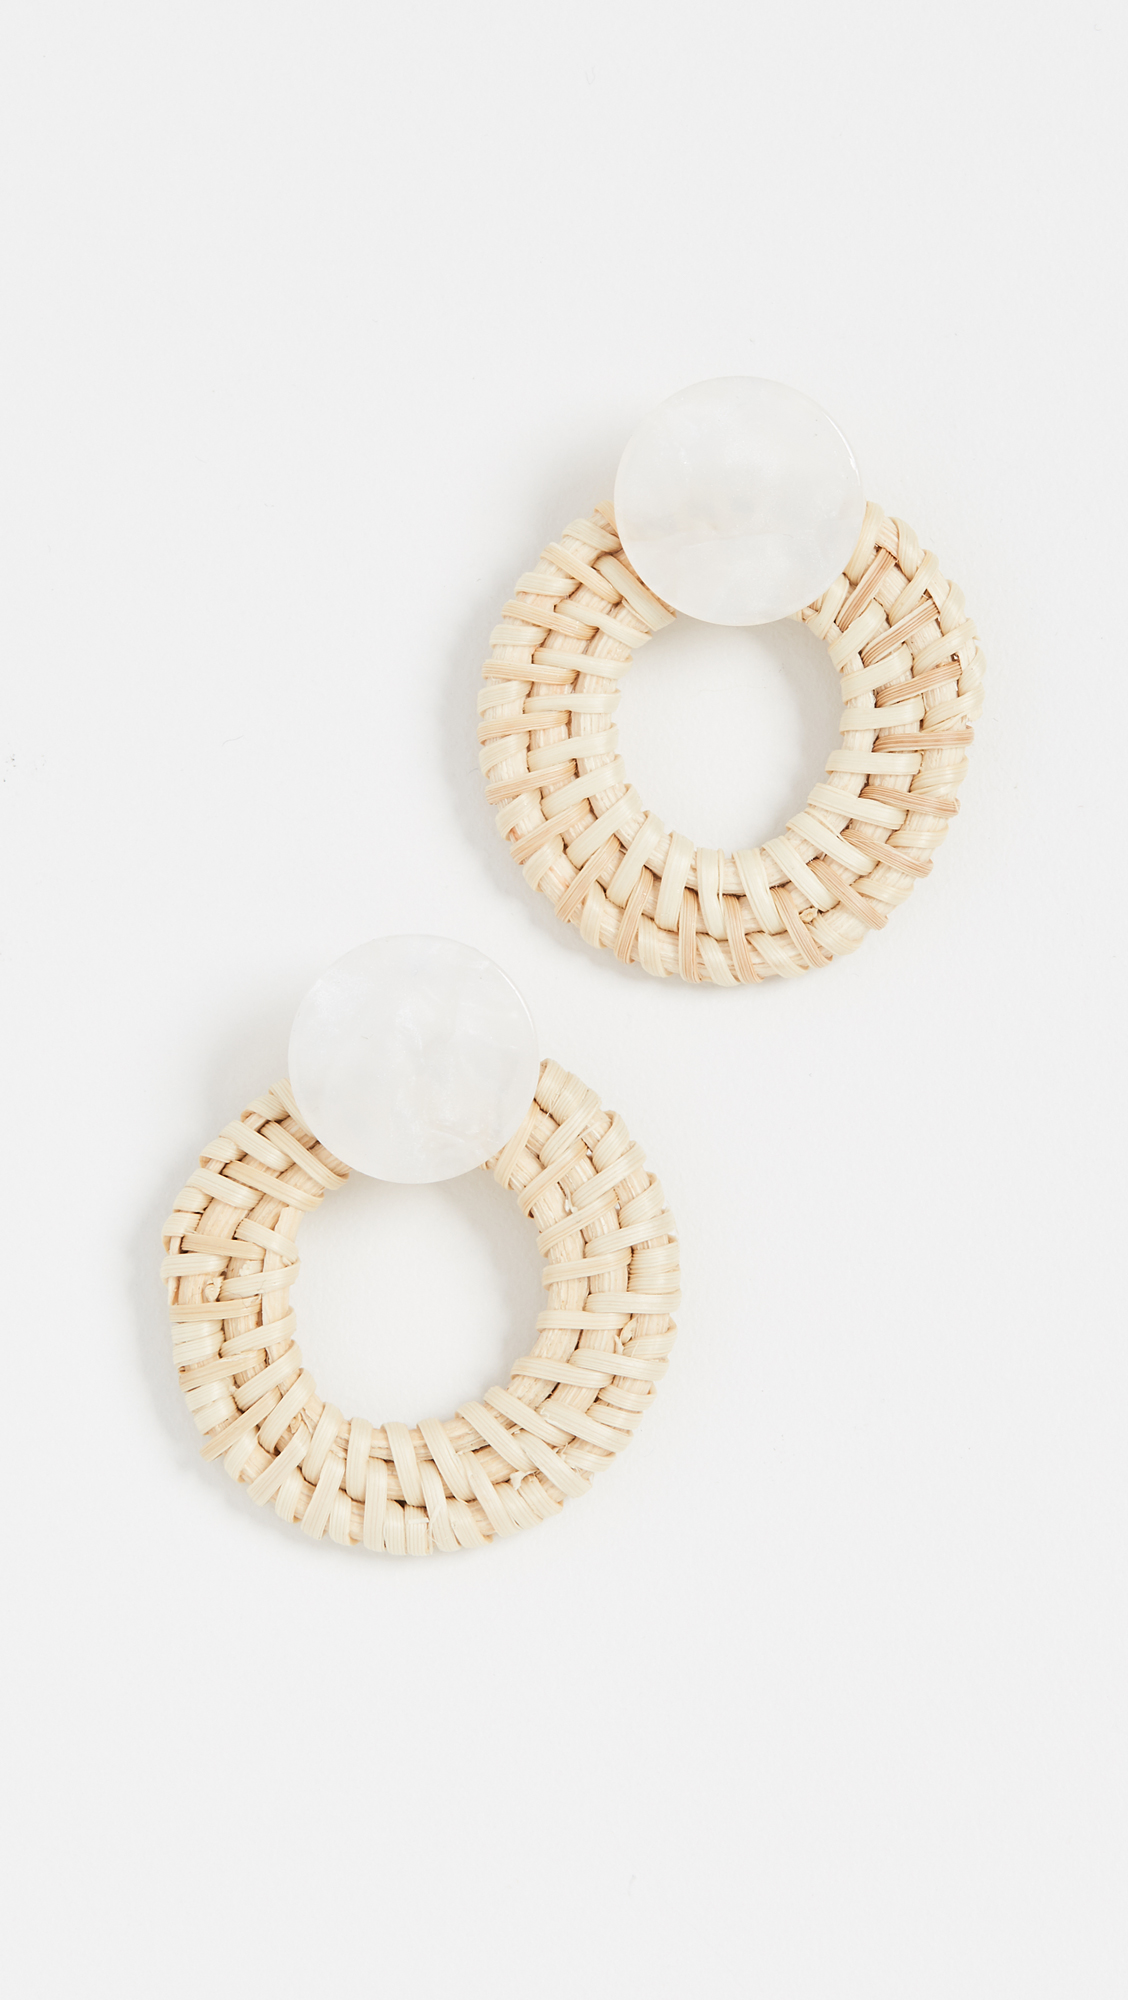 Lucite & Wood Hoops - These earrings are the perfect summer accessory to any look. Pair them with an easy dress or your favorite pair of cut-off shorts for an instant resort-ready vibe!